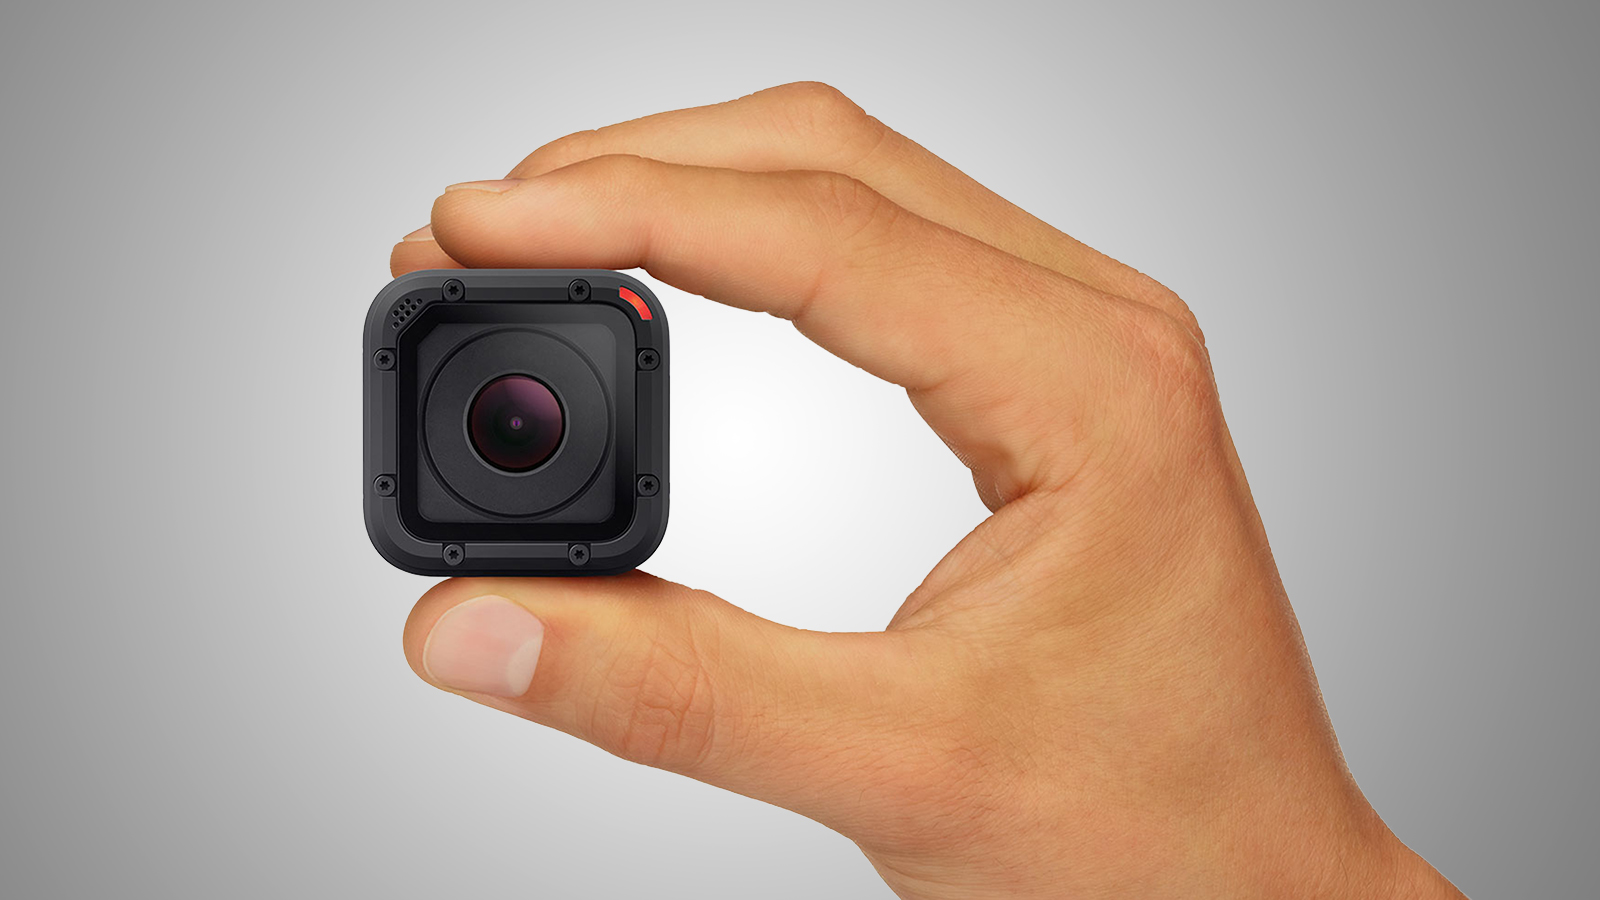 gopro-hero4-session-2-avang